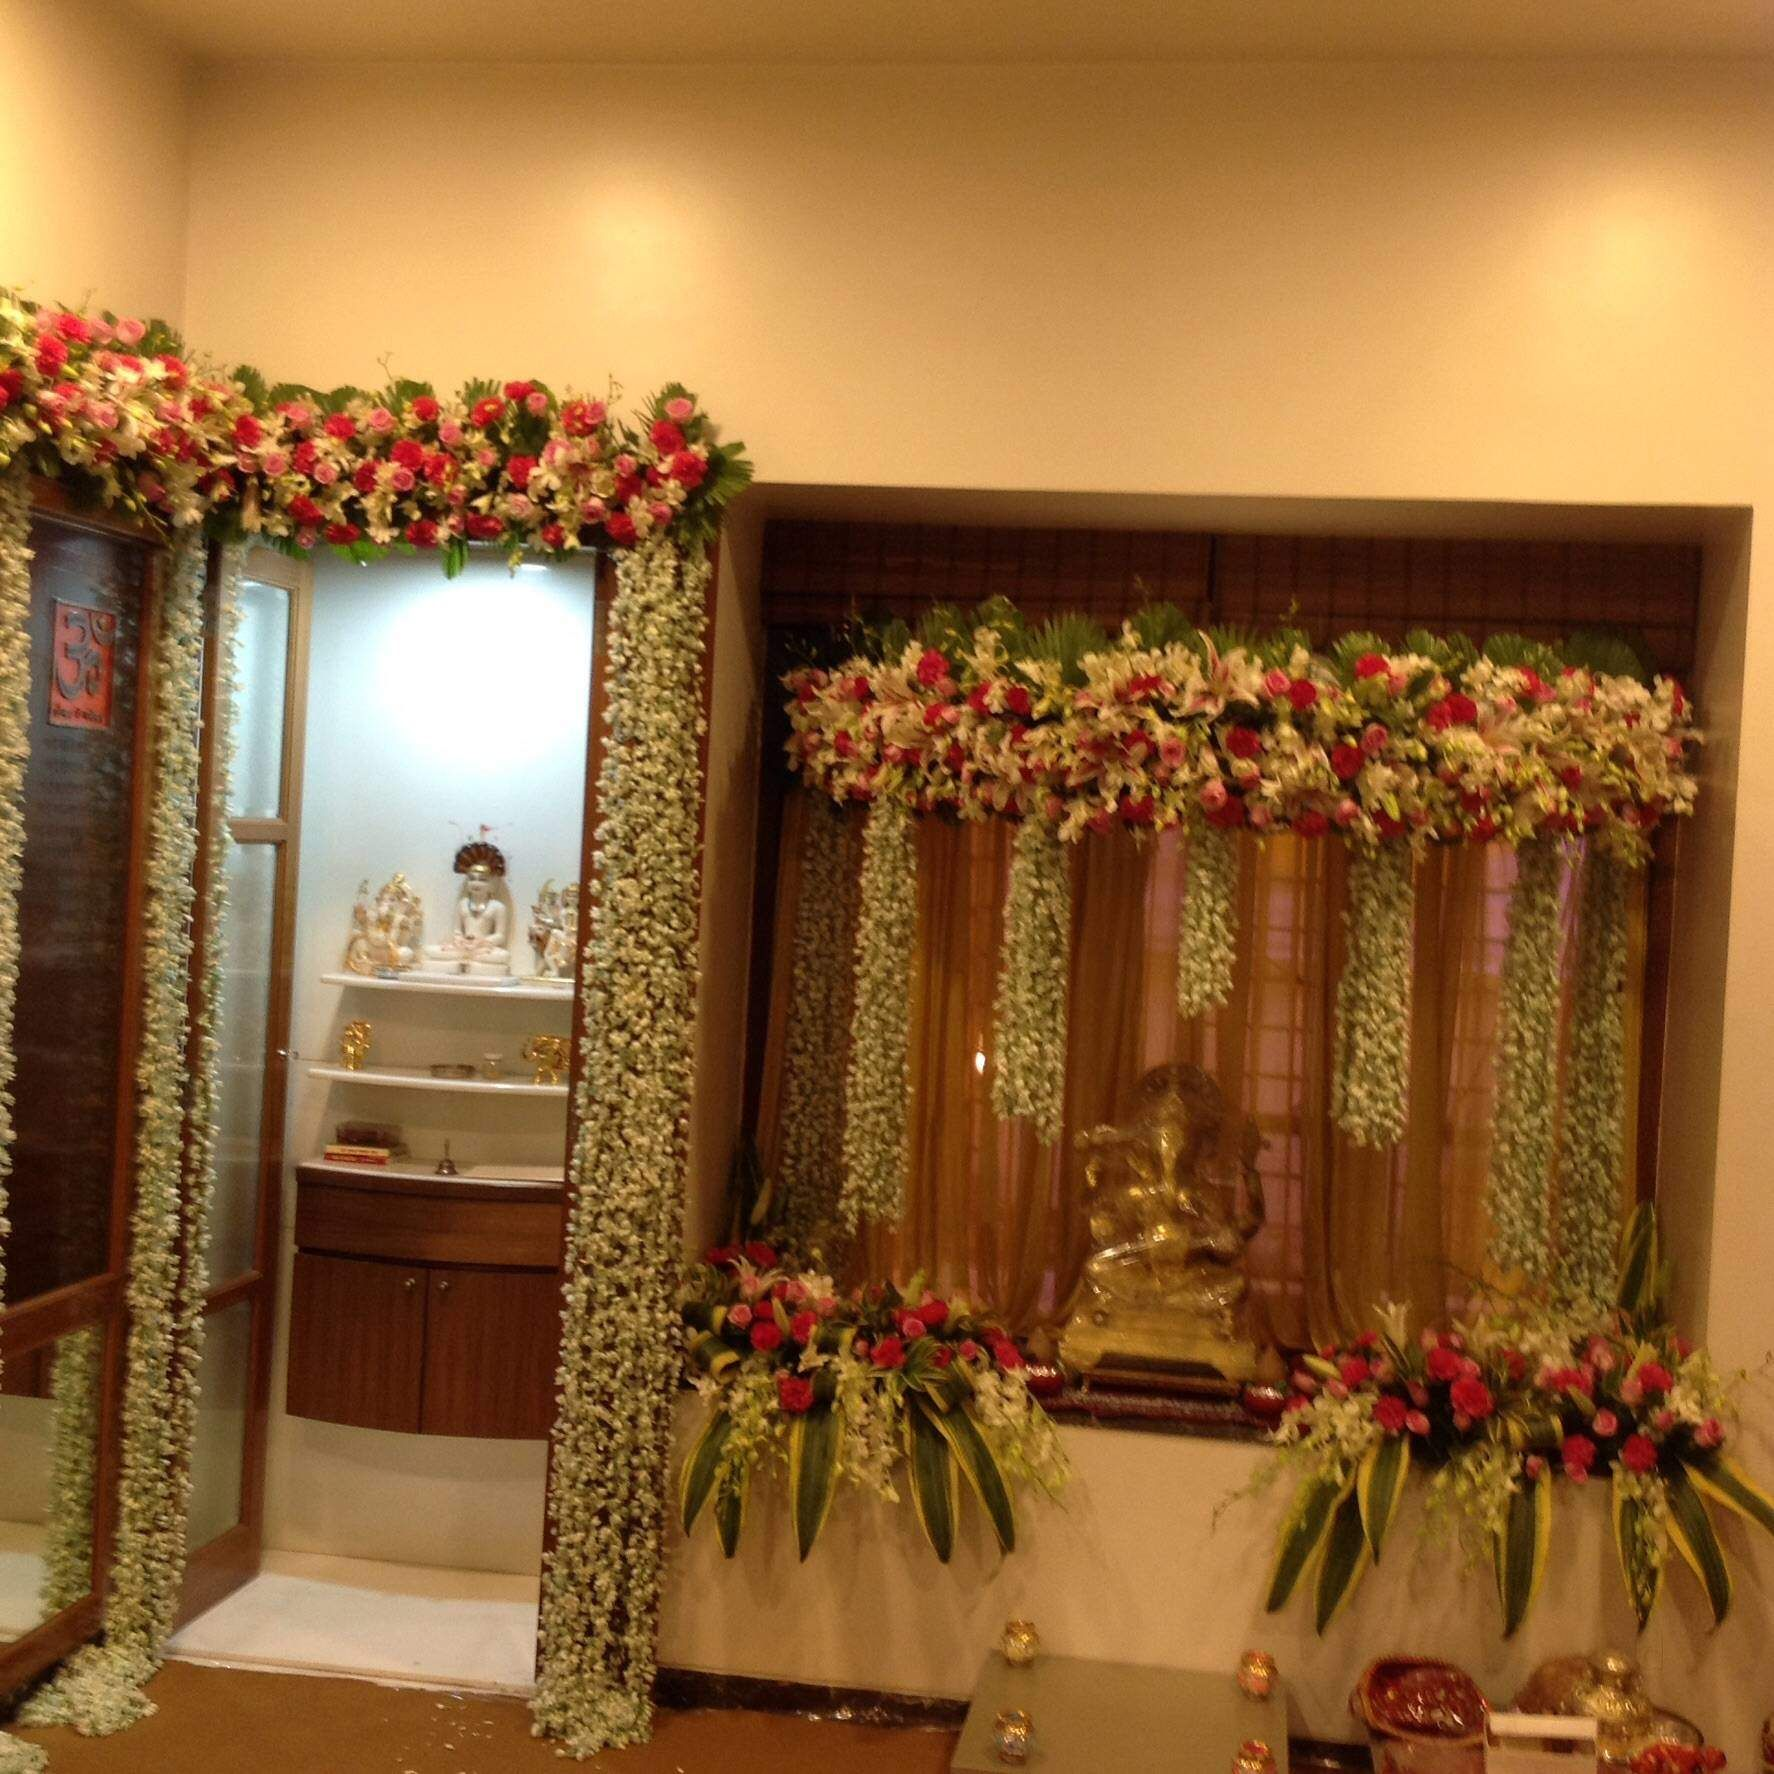 Wedding Flower Decoration Photos: Image Result For Ferns & Petals Decoration Ganpati